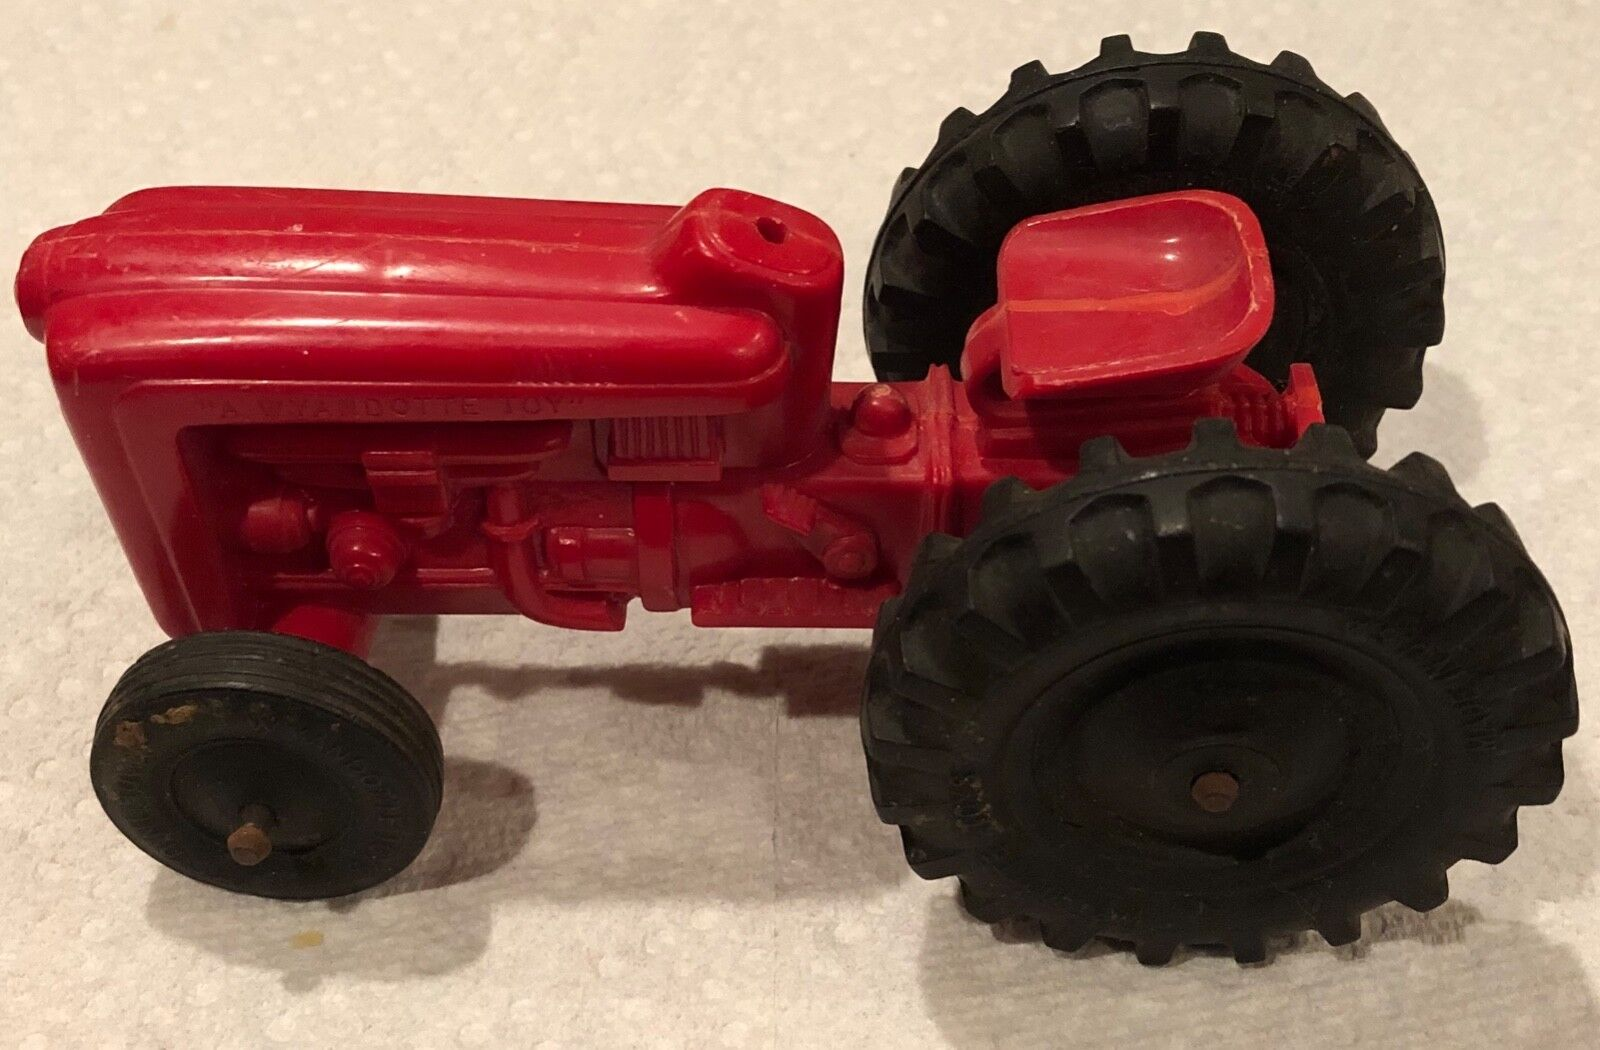 Extremely RARE Vintage Wyandotte Toys Red Tractor HTF